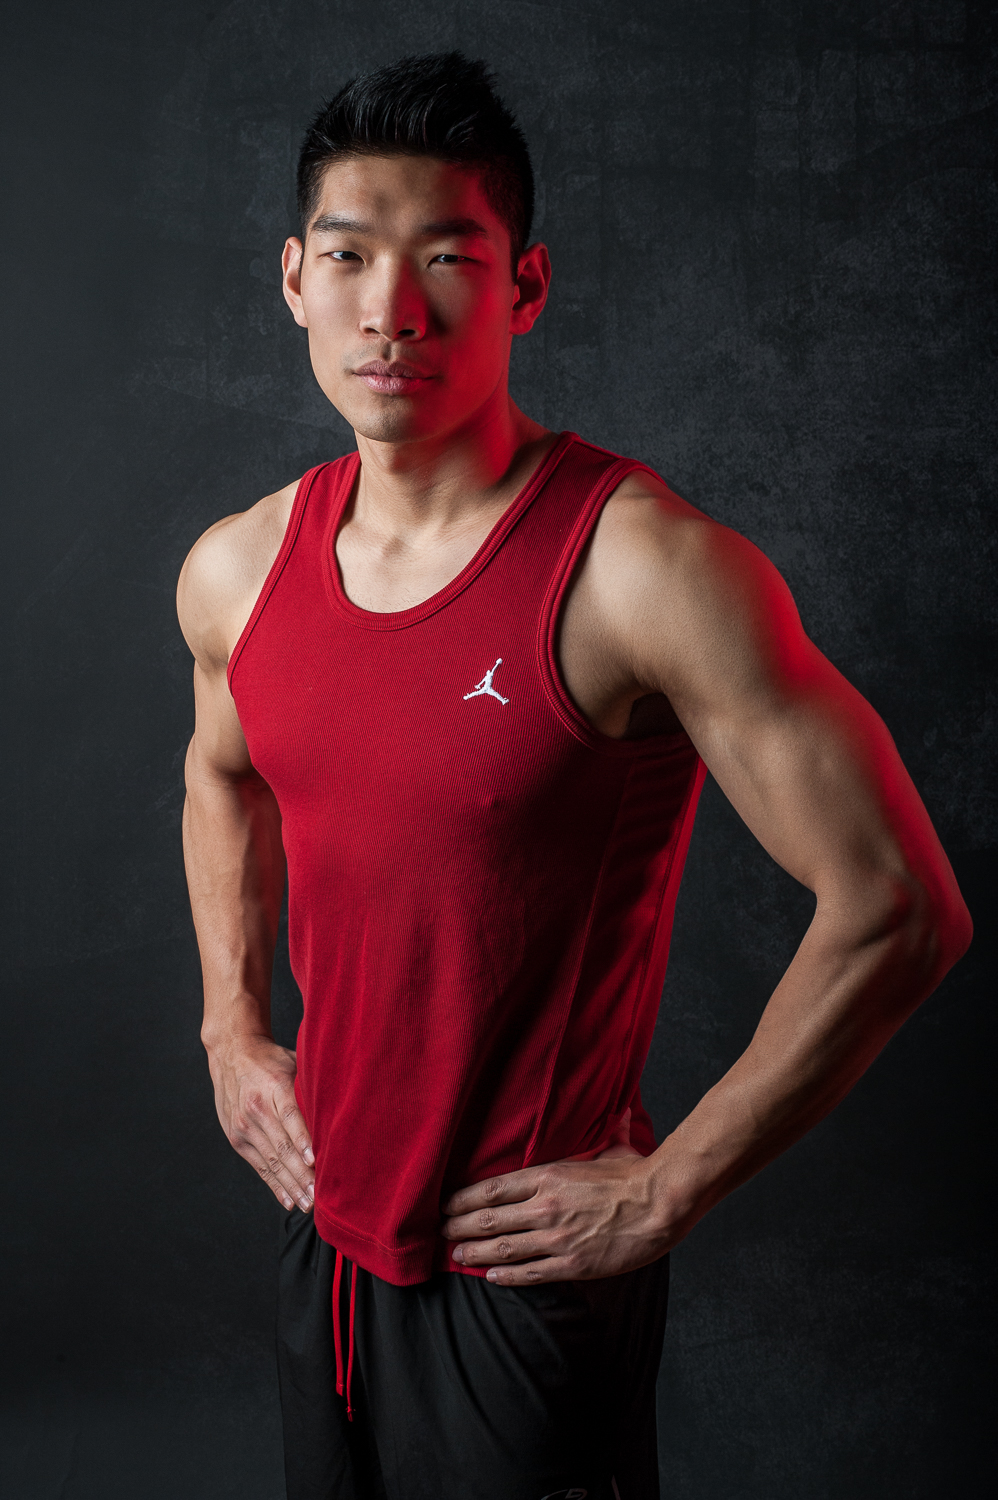 Hamilton Toronto Fitness Model Leo Chan Michael Jordan Apparel - Photographer - Marek Michalek.jpg